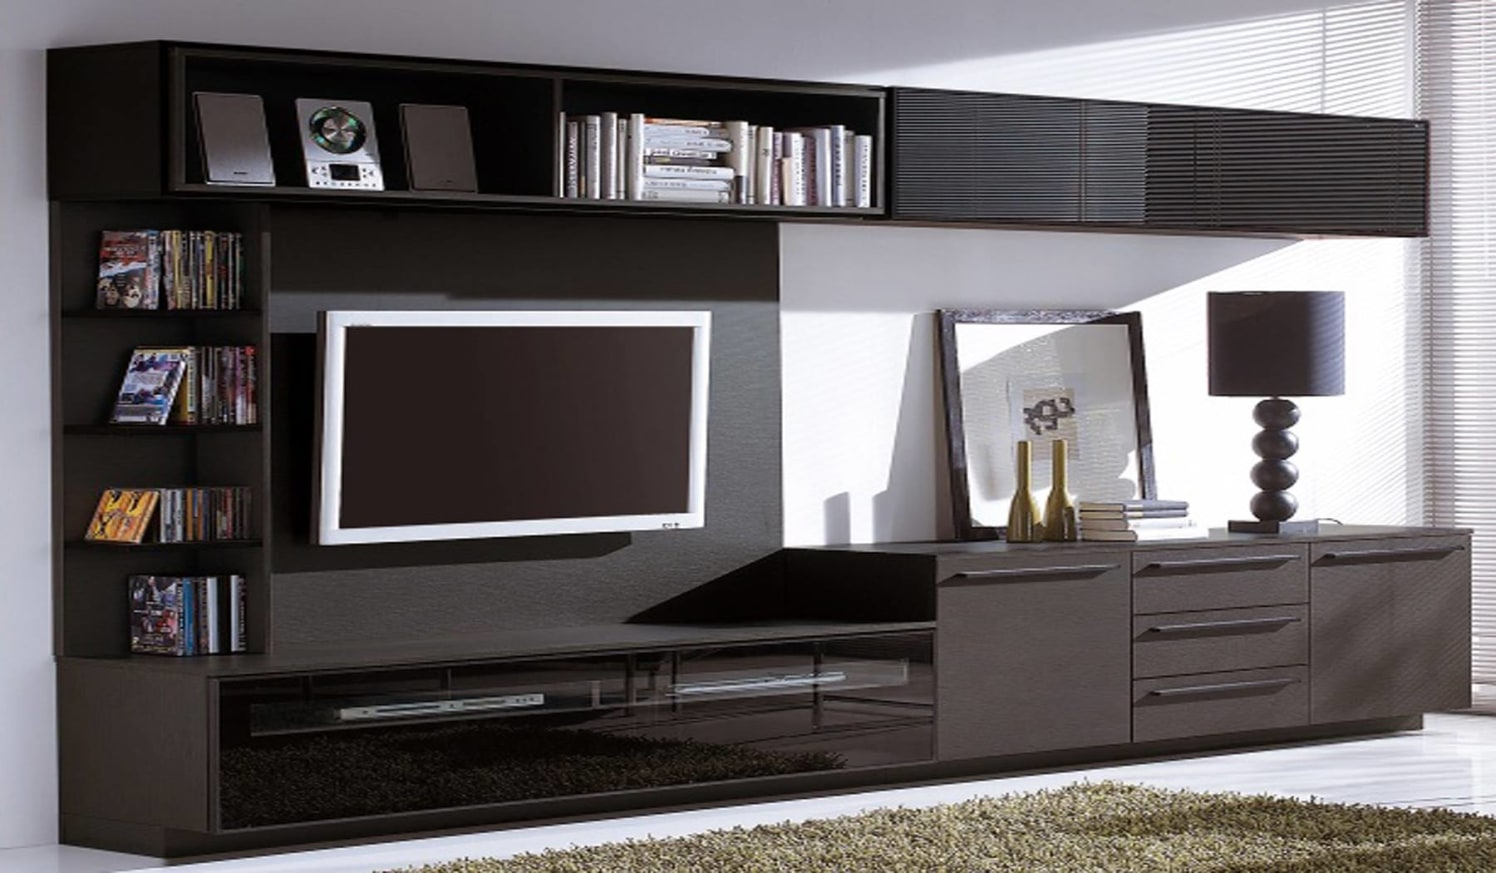 Wood Finish TV Cabinet by SJ Interior Decors Living-room Modern | Interior Design Photos & Ideas